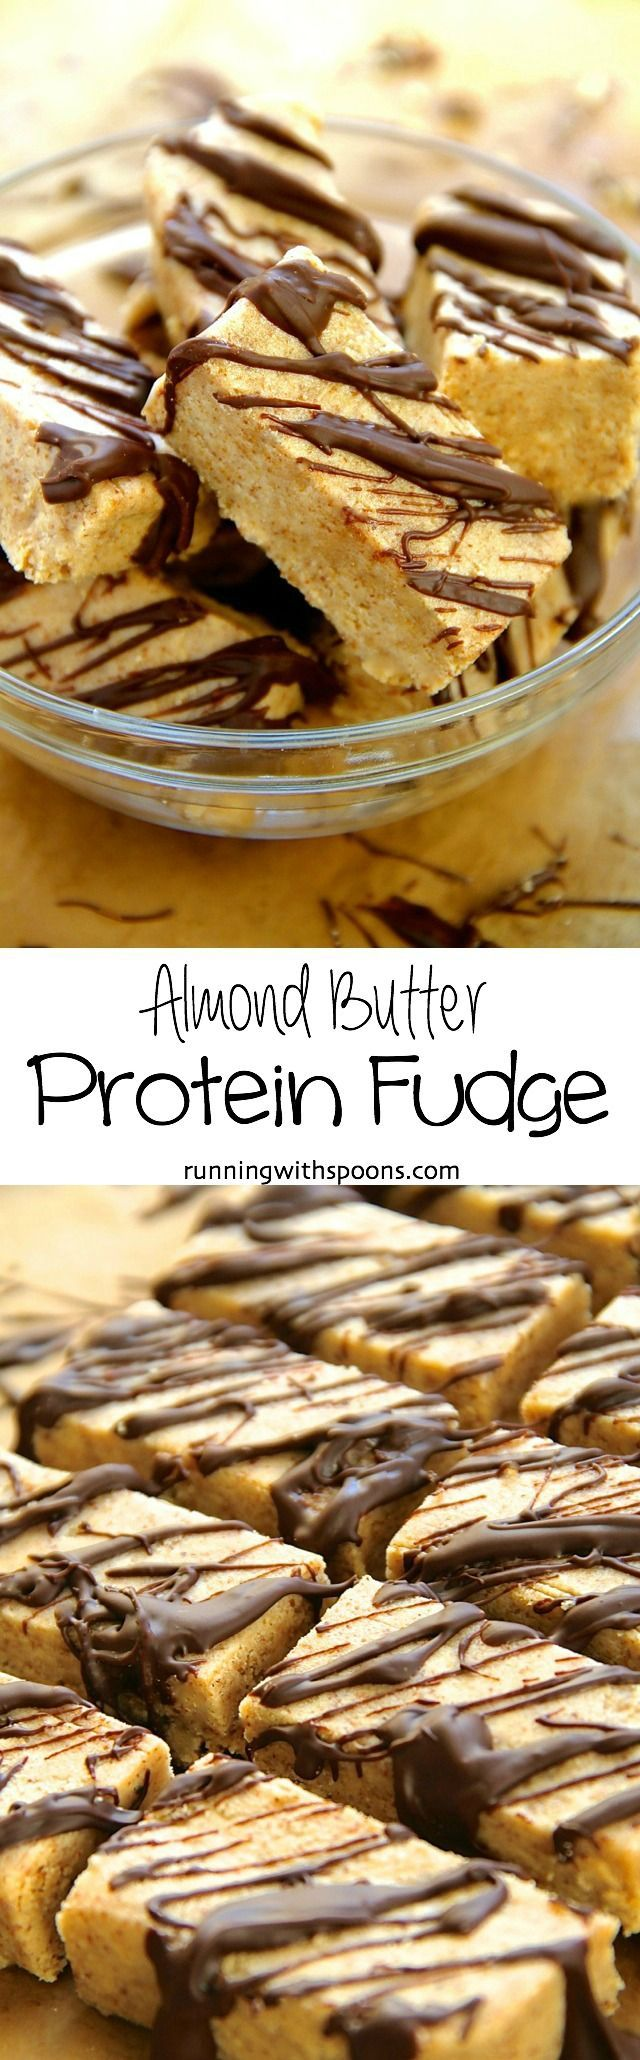 Almond Butter Protein Fudge -- Naturally sweetened 5-ingredient fudge that packs a decent dose of protein!    runningwithspoons.com #glutenfree #healthy